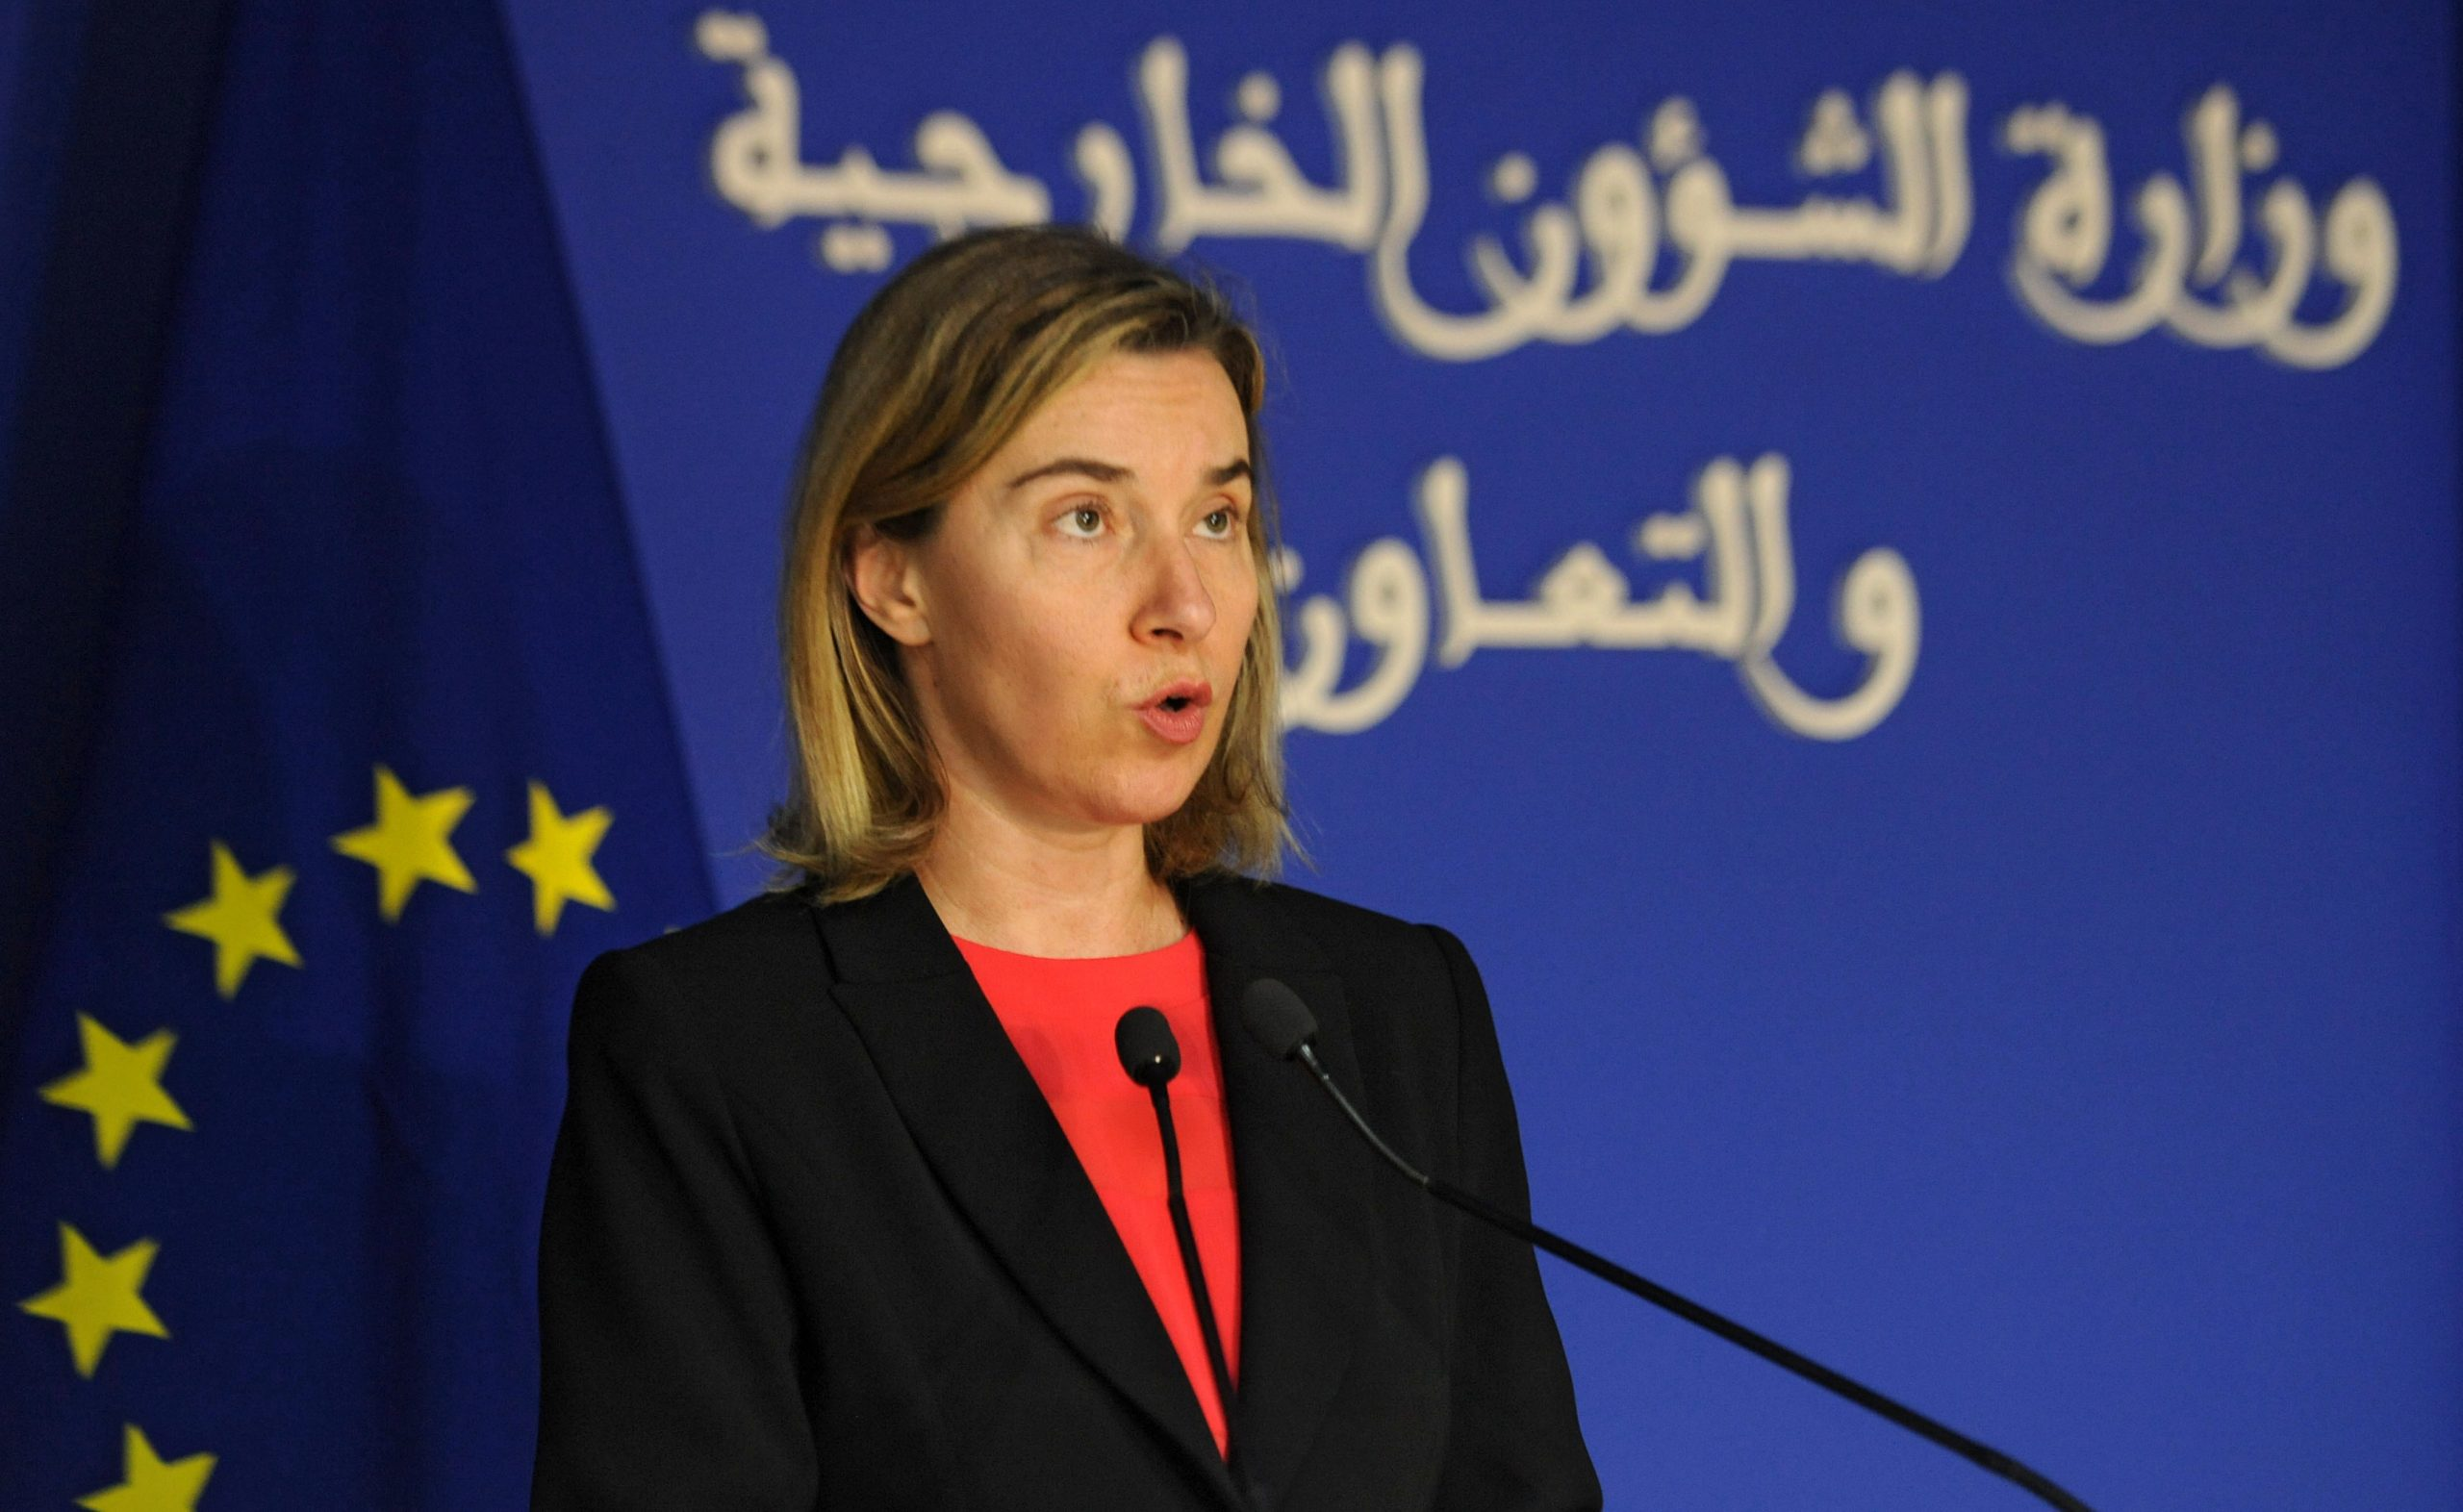 Federica Mogherini wearing a suit and tie